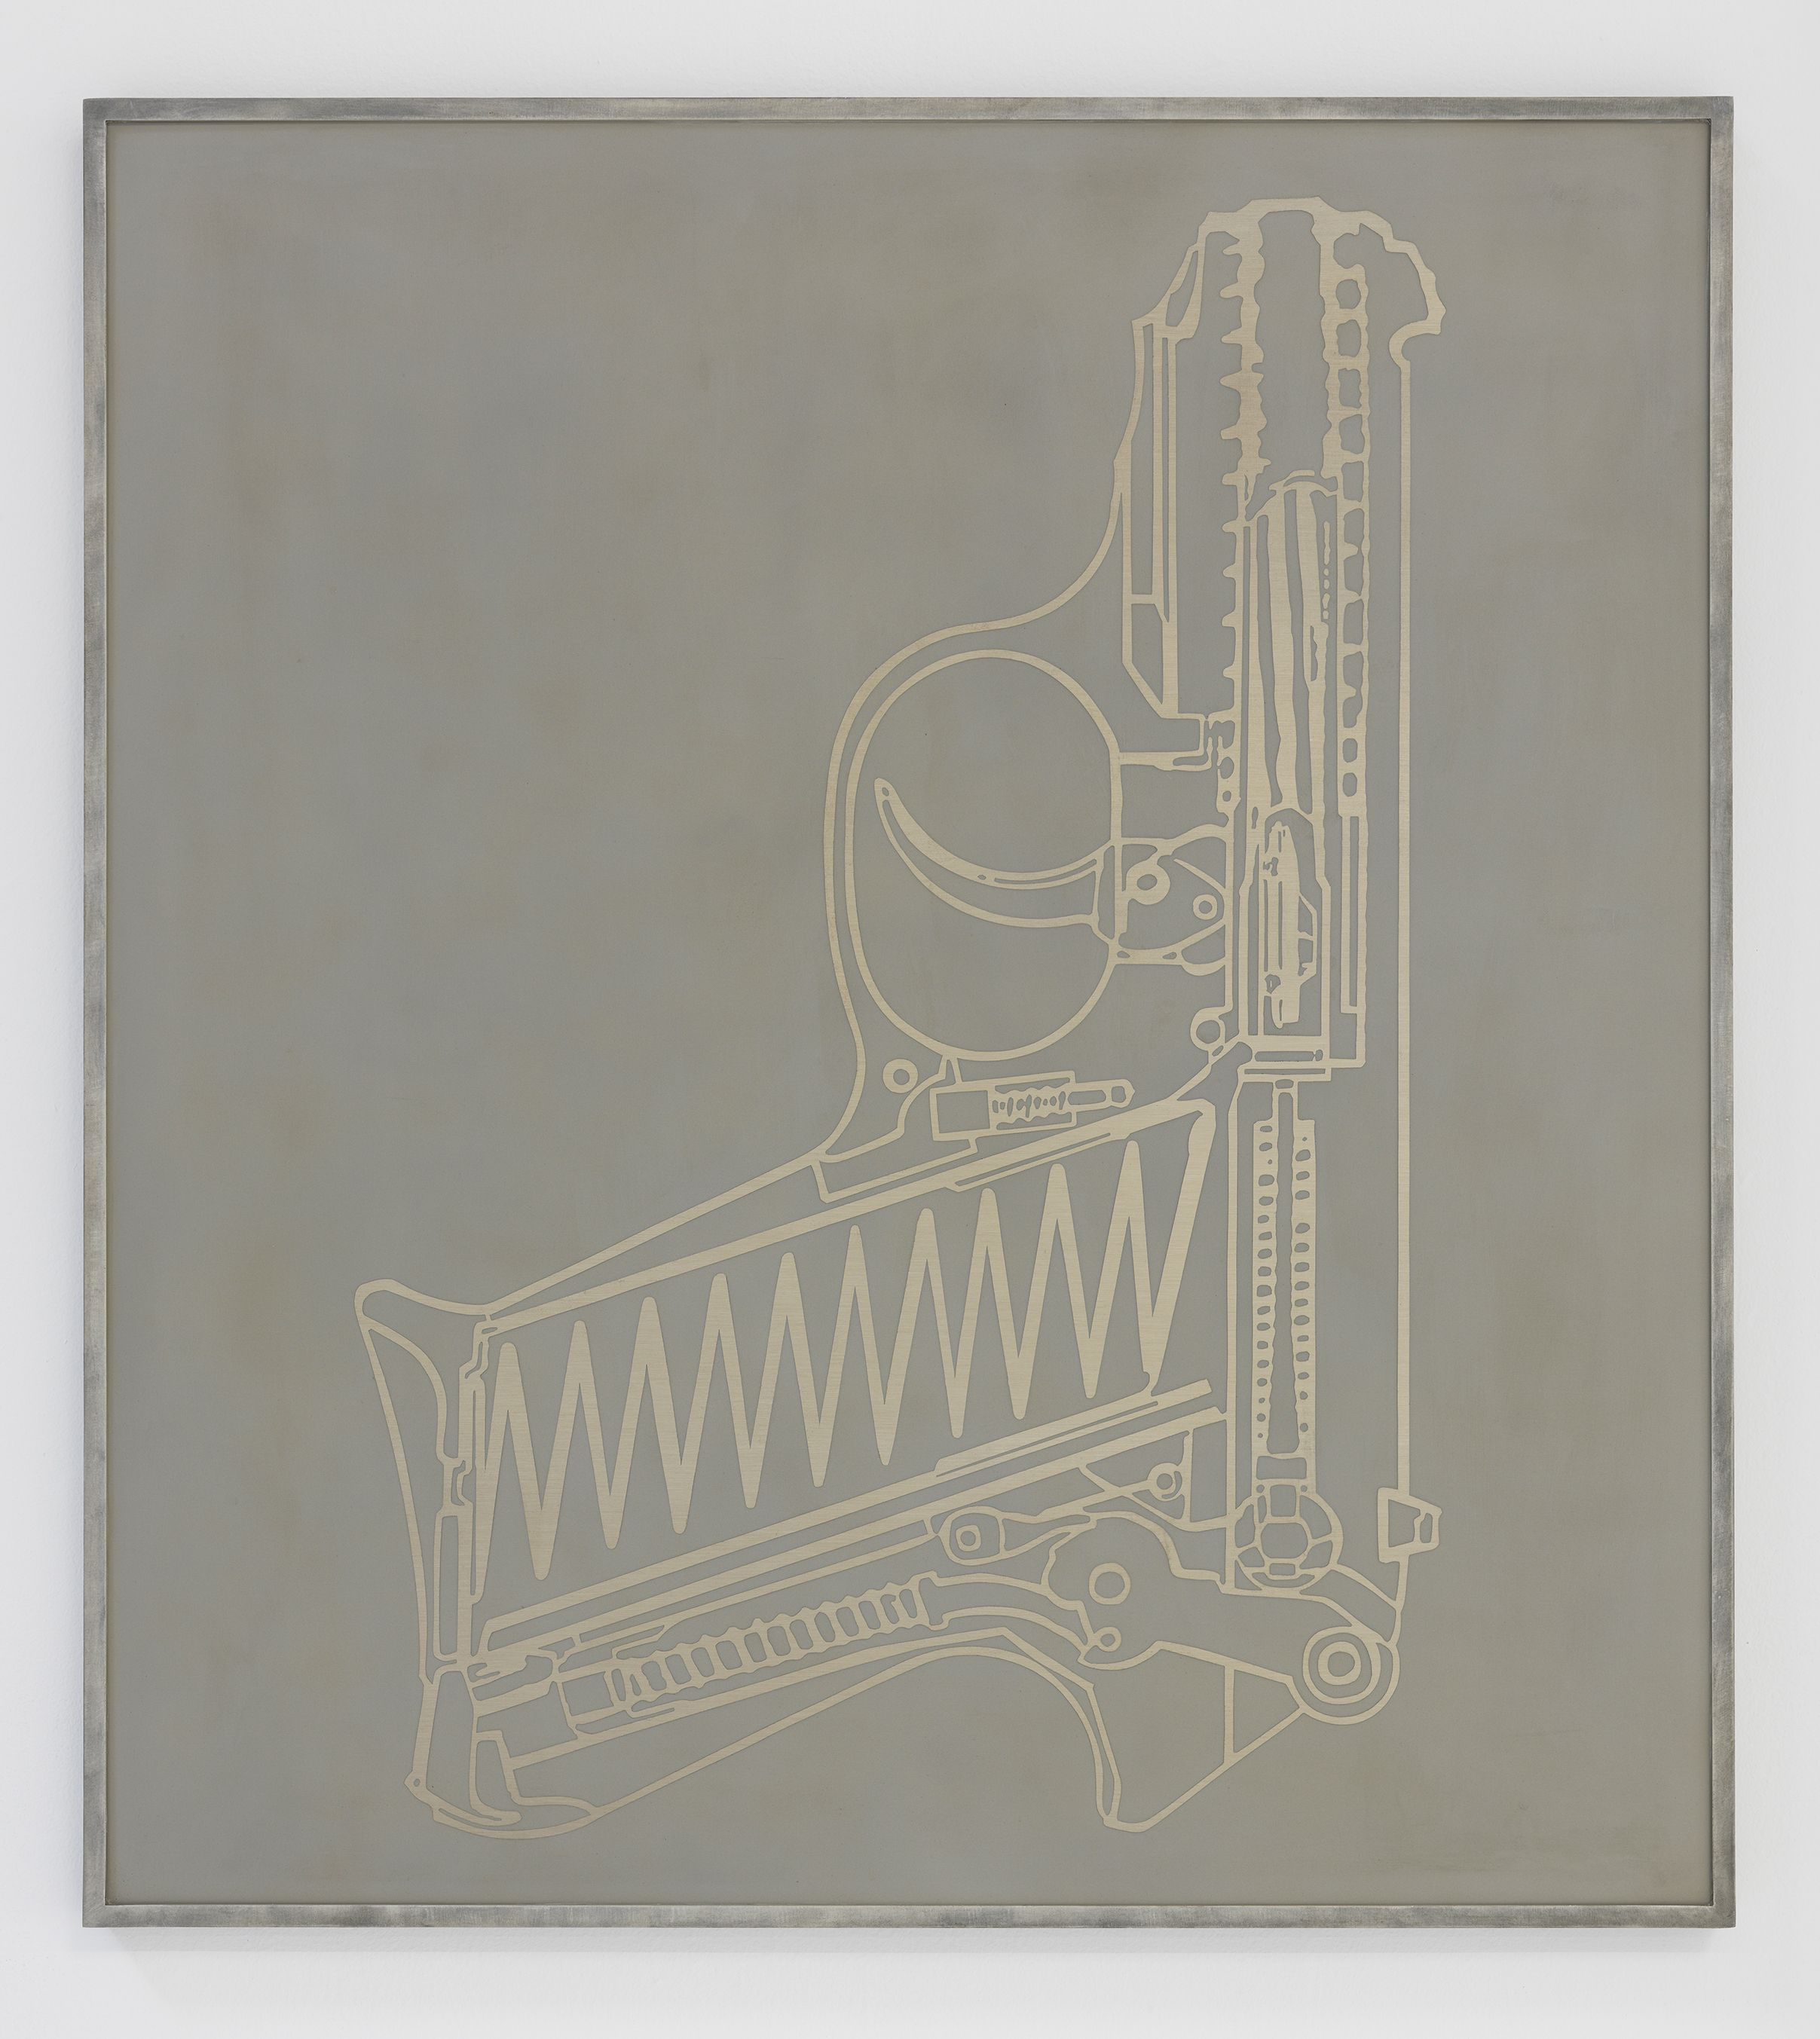 Peter Nagy, Chained To Life, 1987